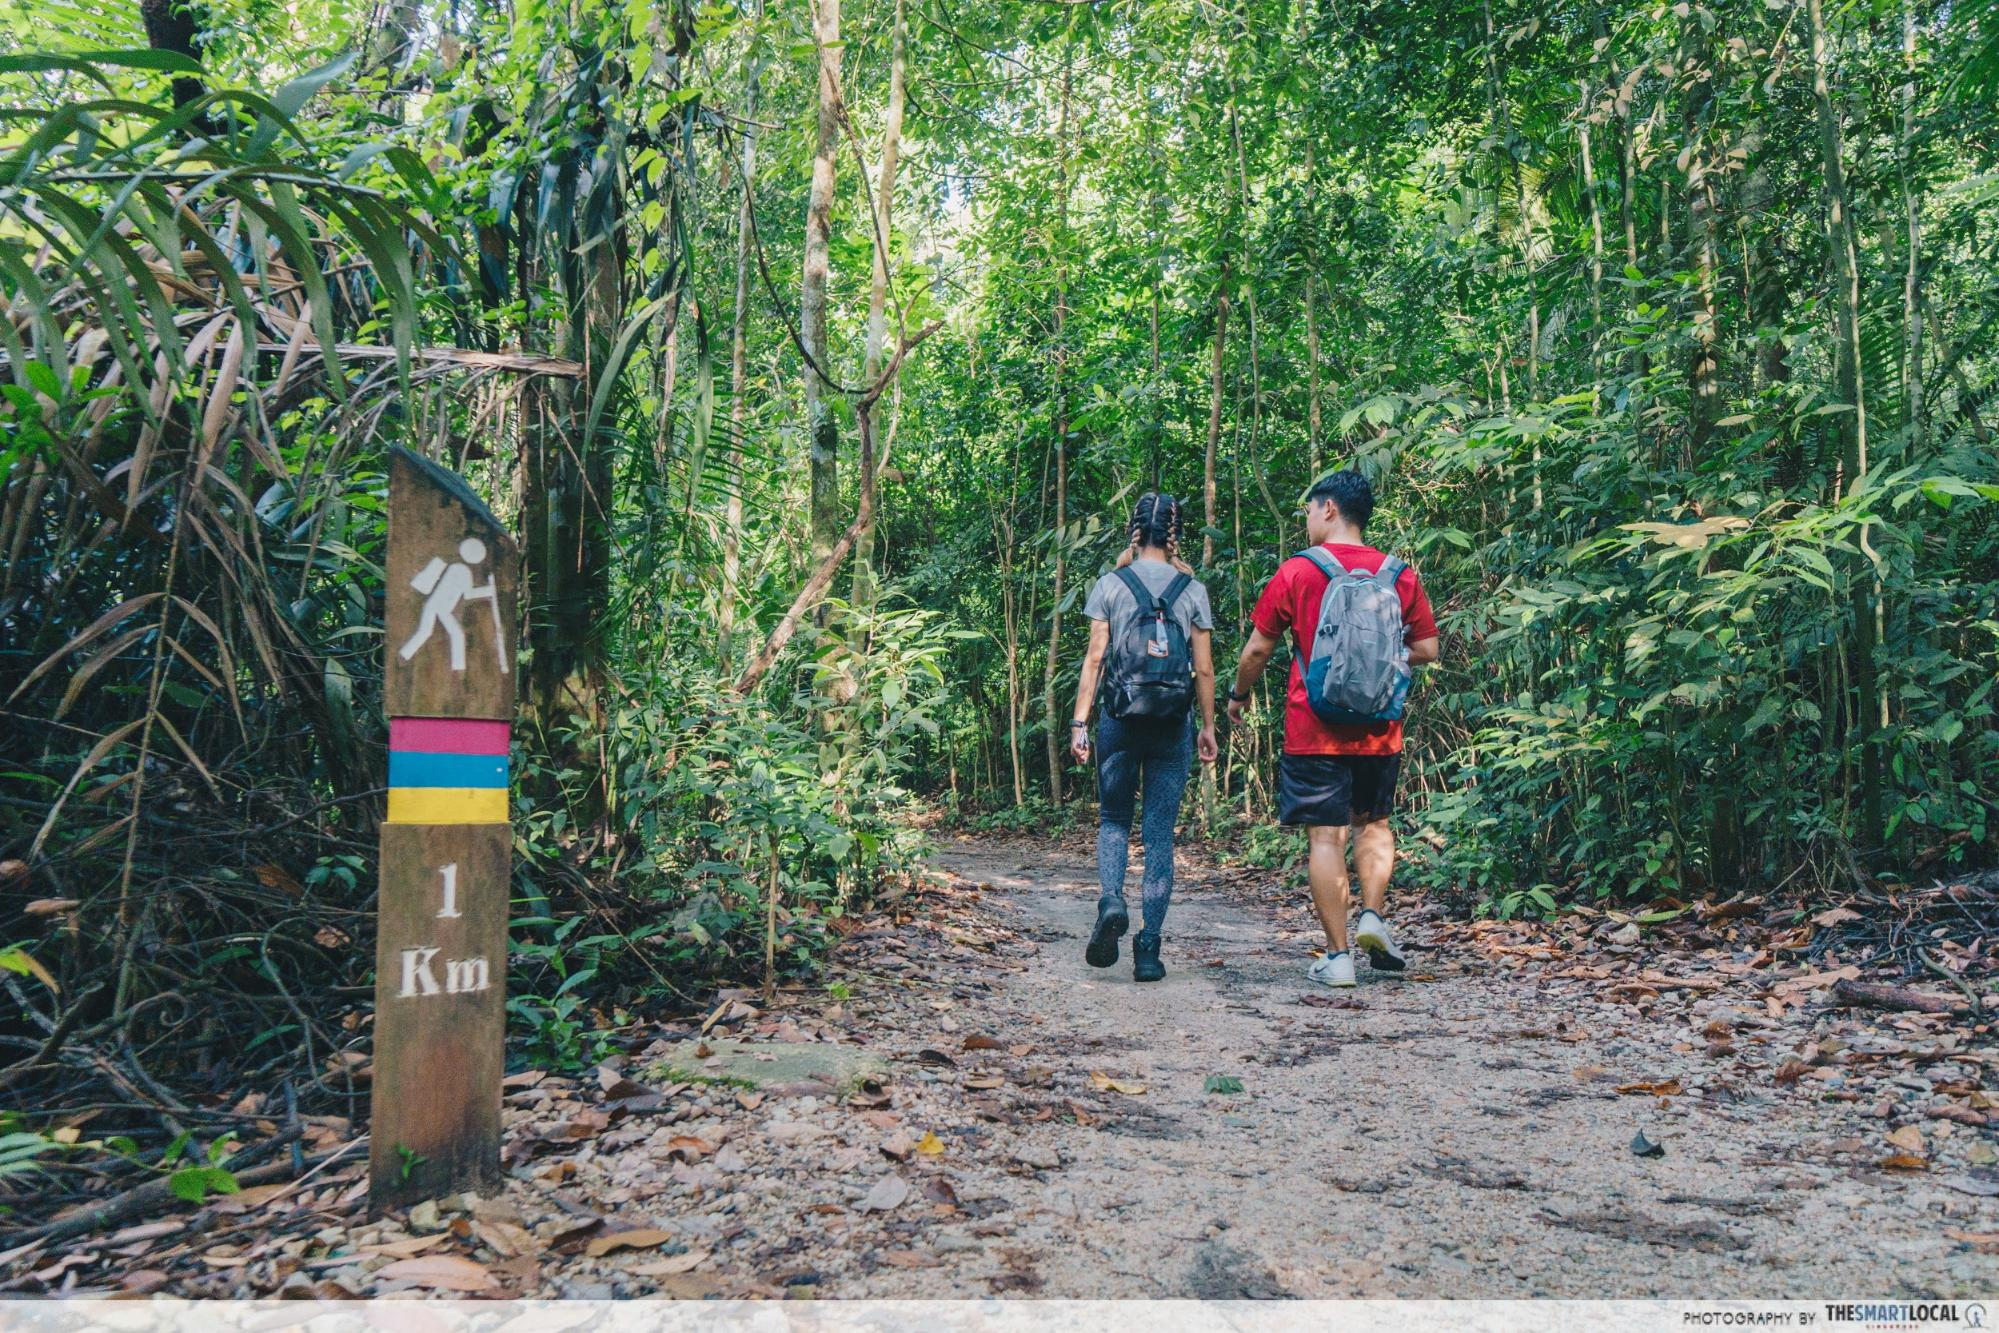 MacRitchie - Trail markers